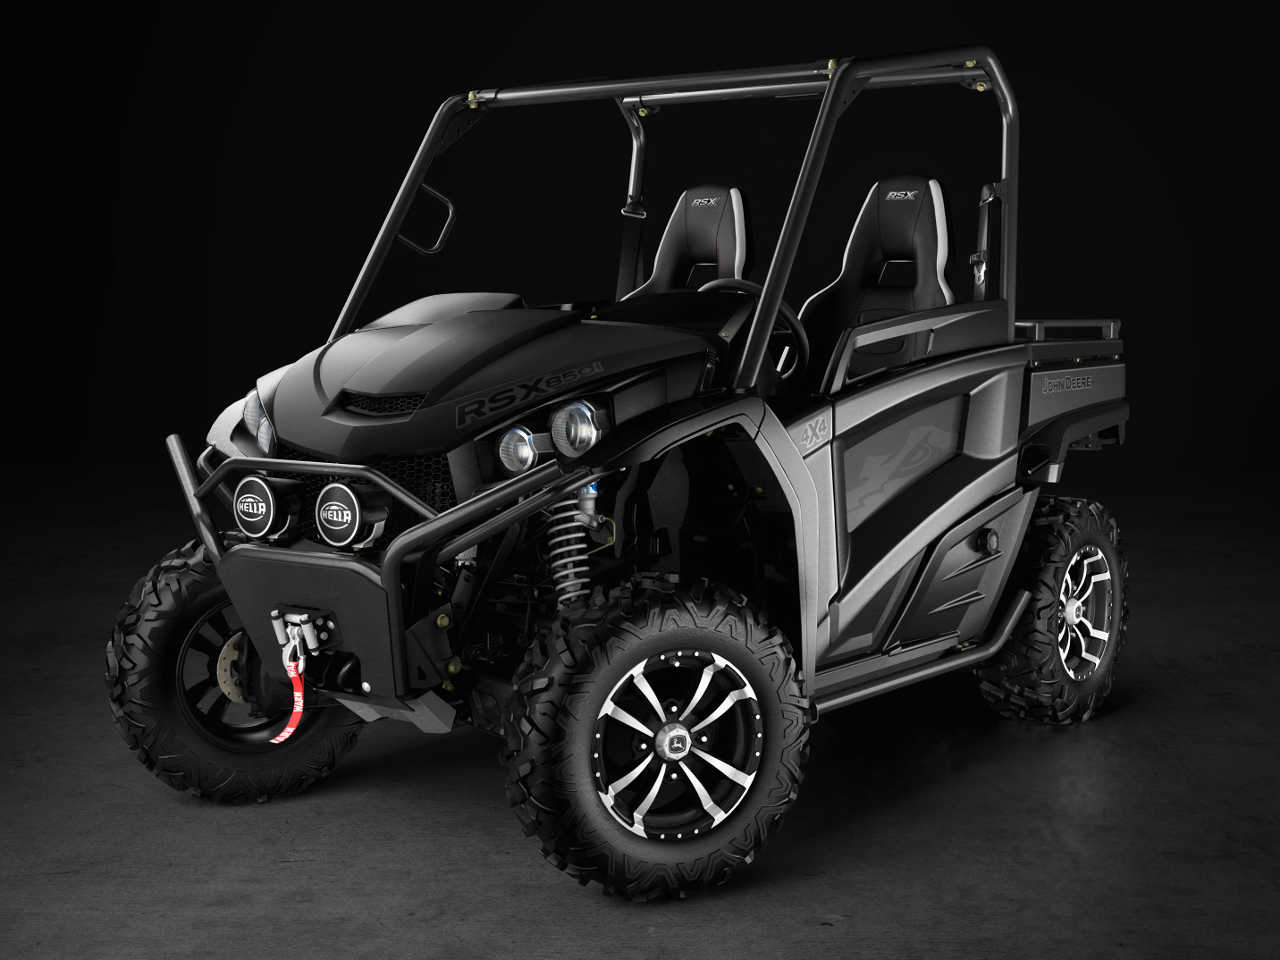 Special Edition John Deere Gators Emerge From The Darkness